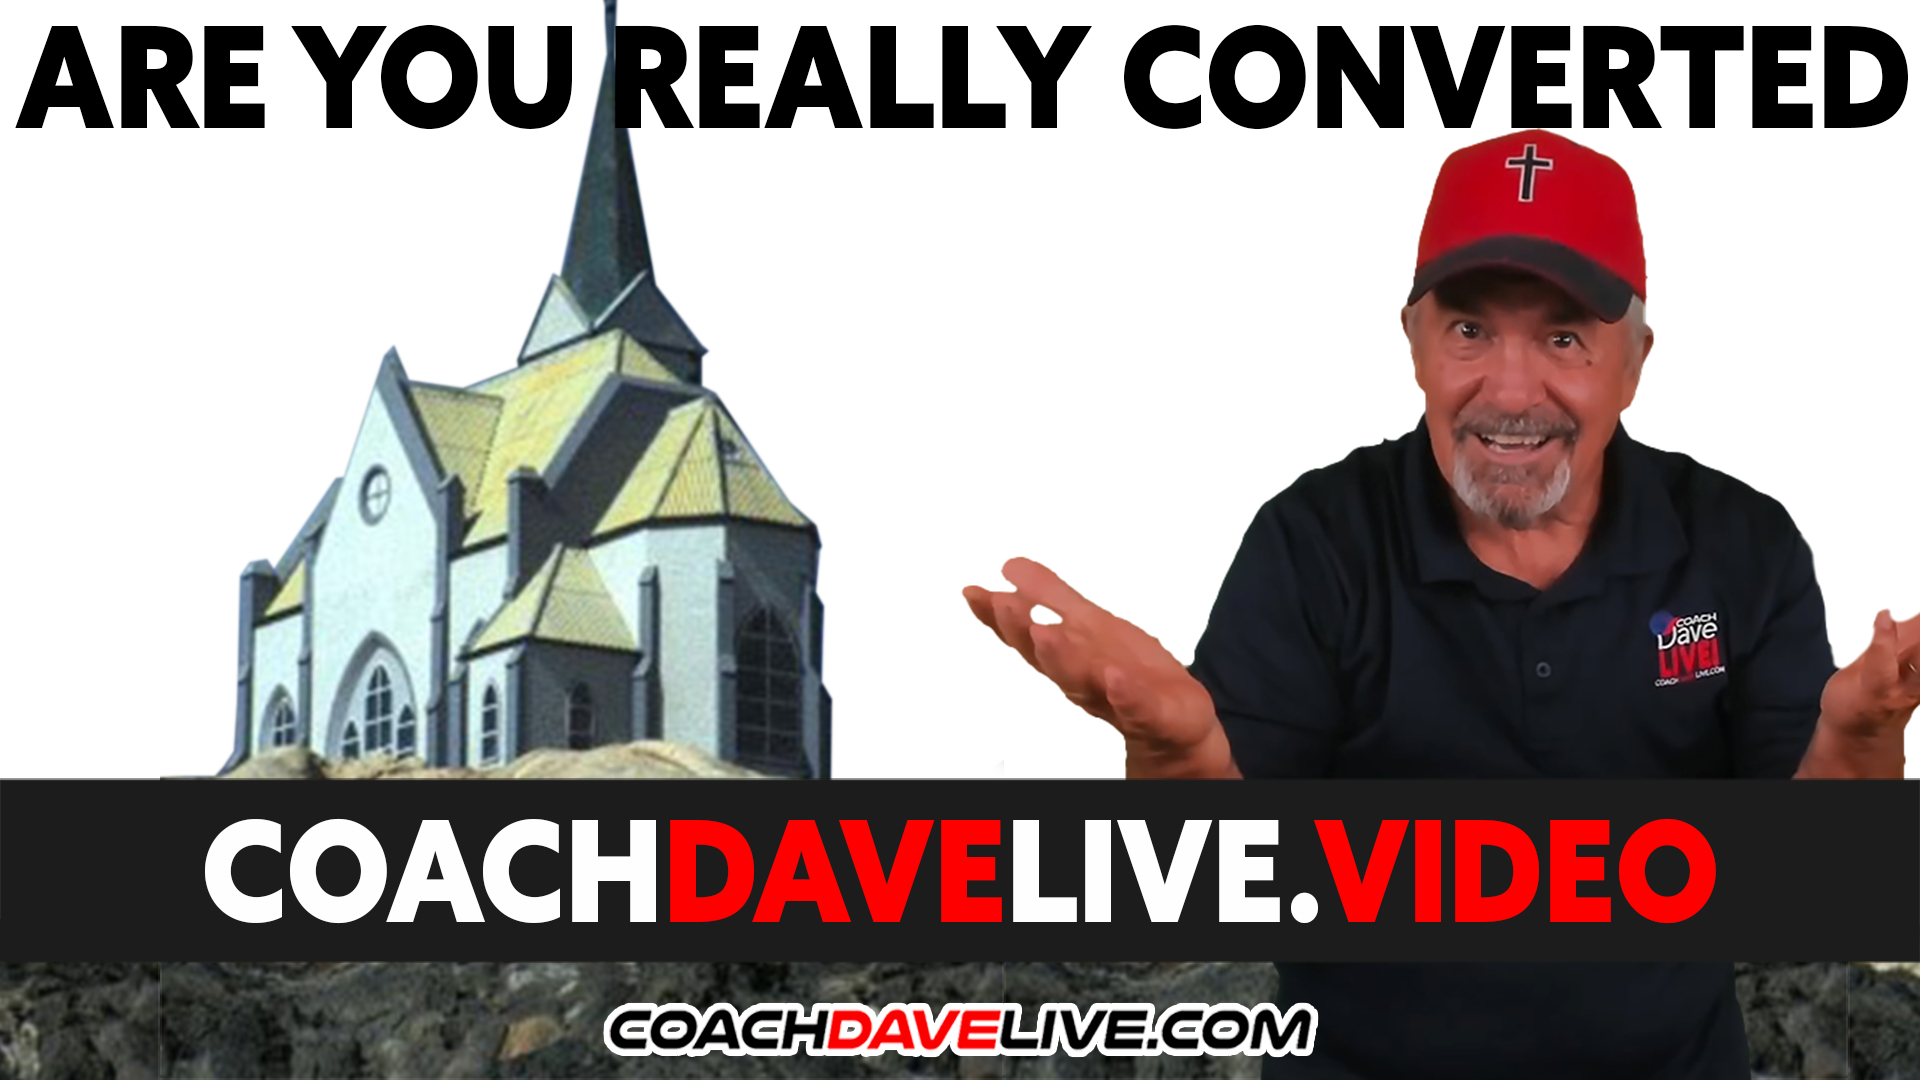 Coach Dave LIVE | 9-20-2021 | ARE YOU REALLY CONVERTED?